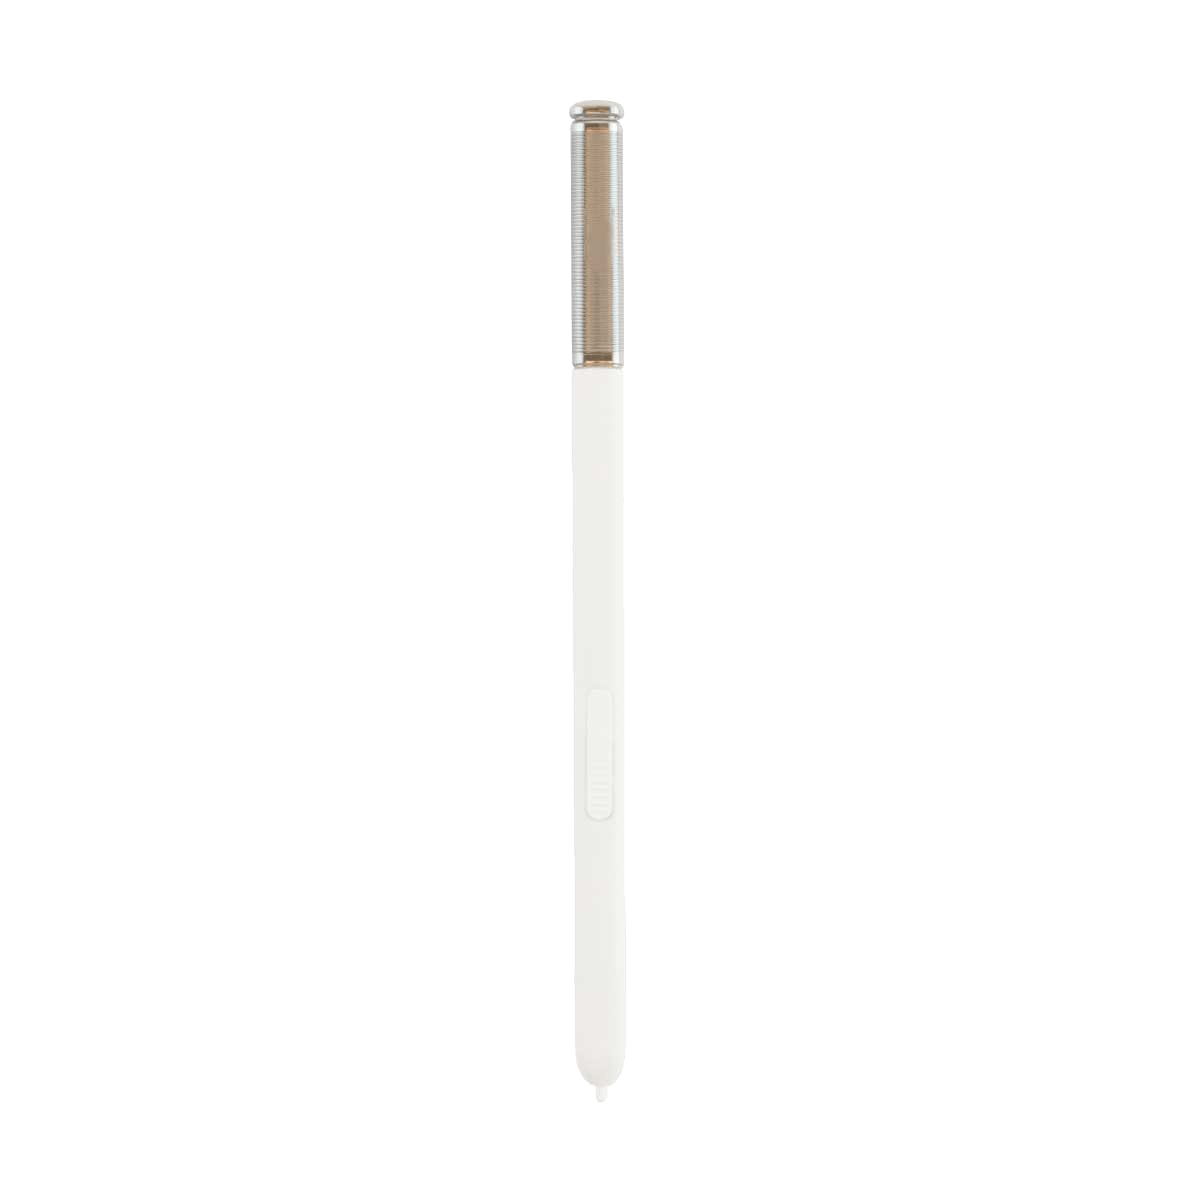 Samsung Galaxy Note Edge Stylus Pen Replacement